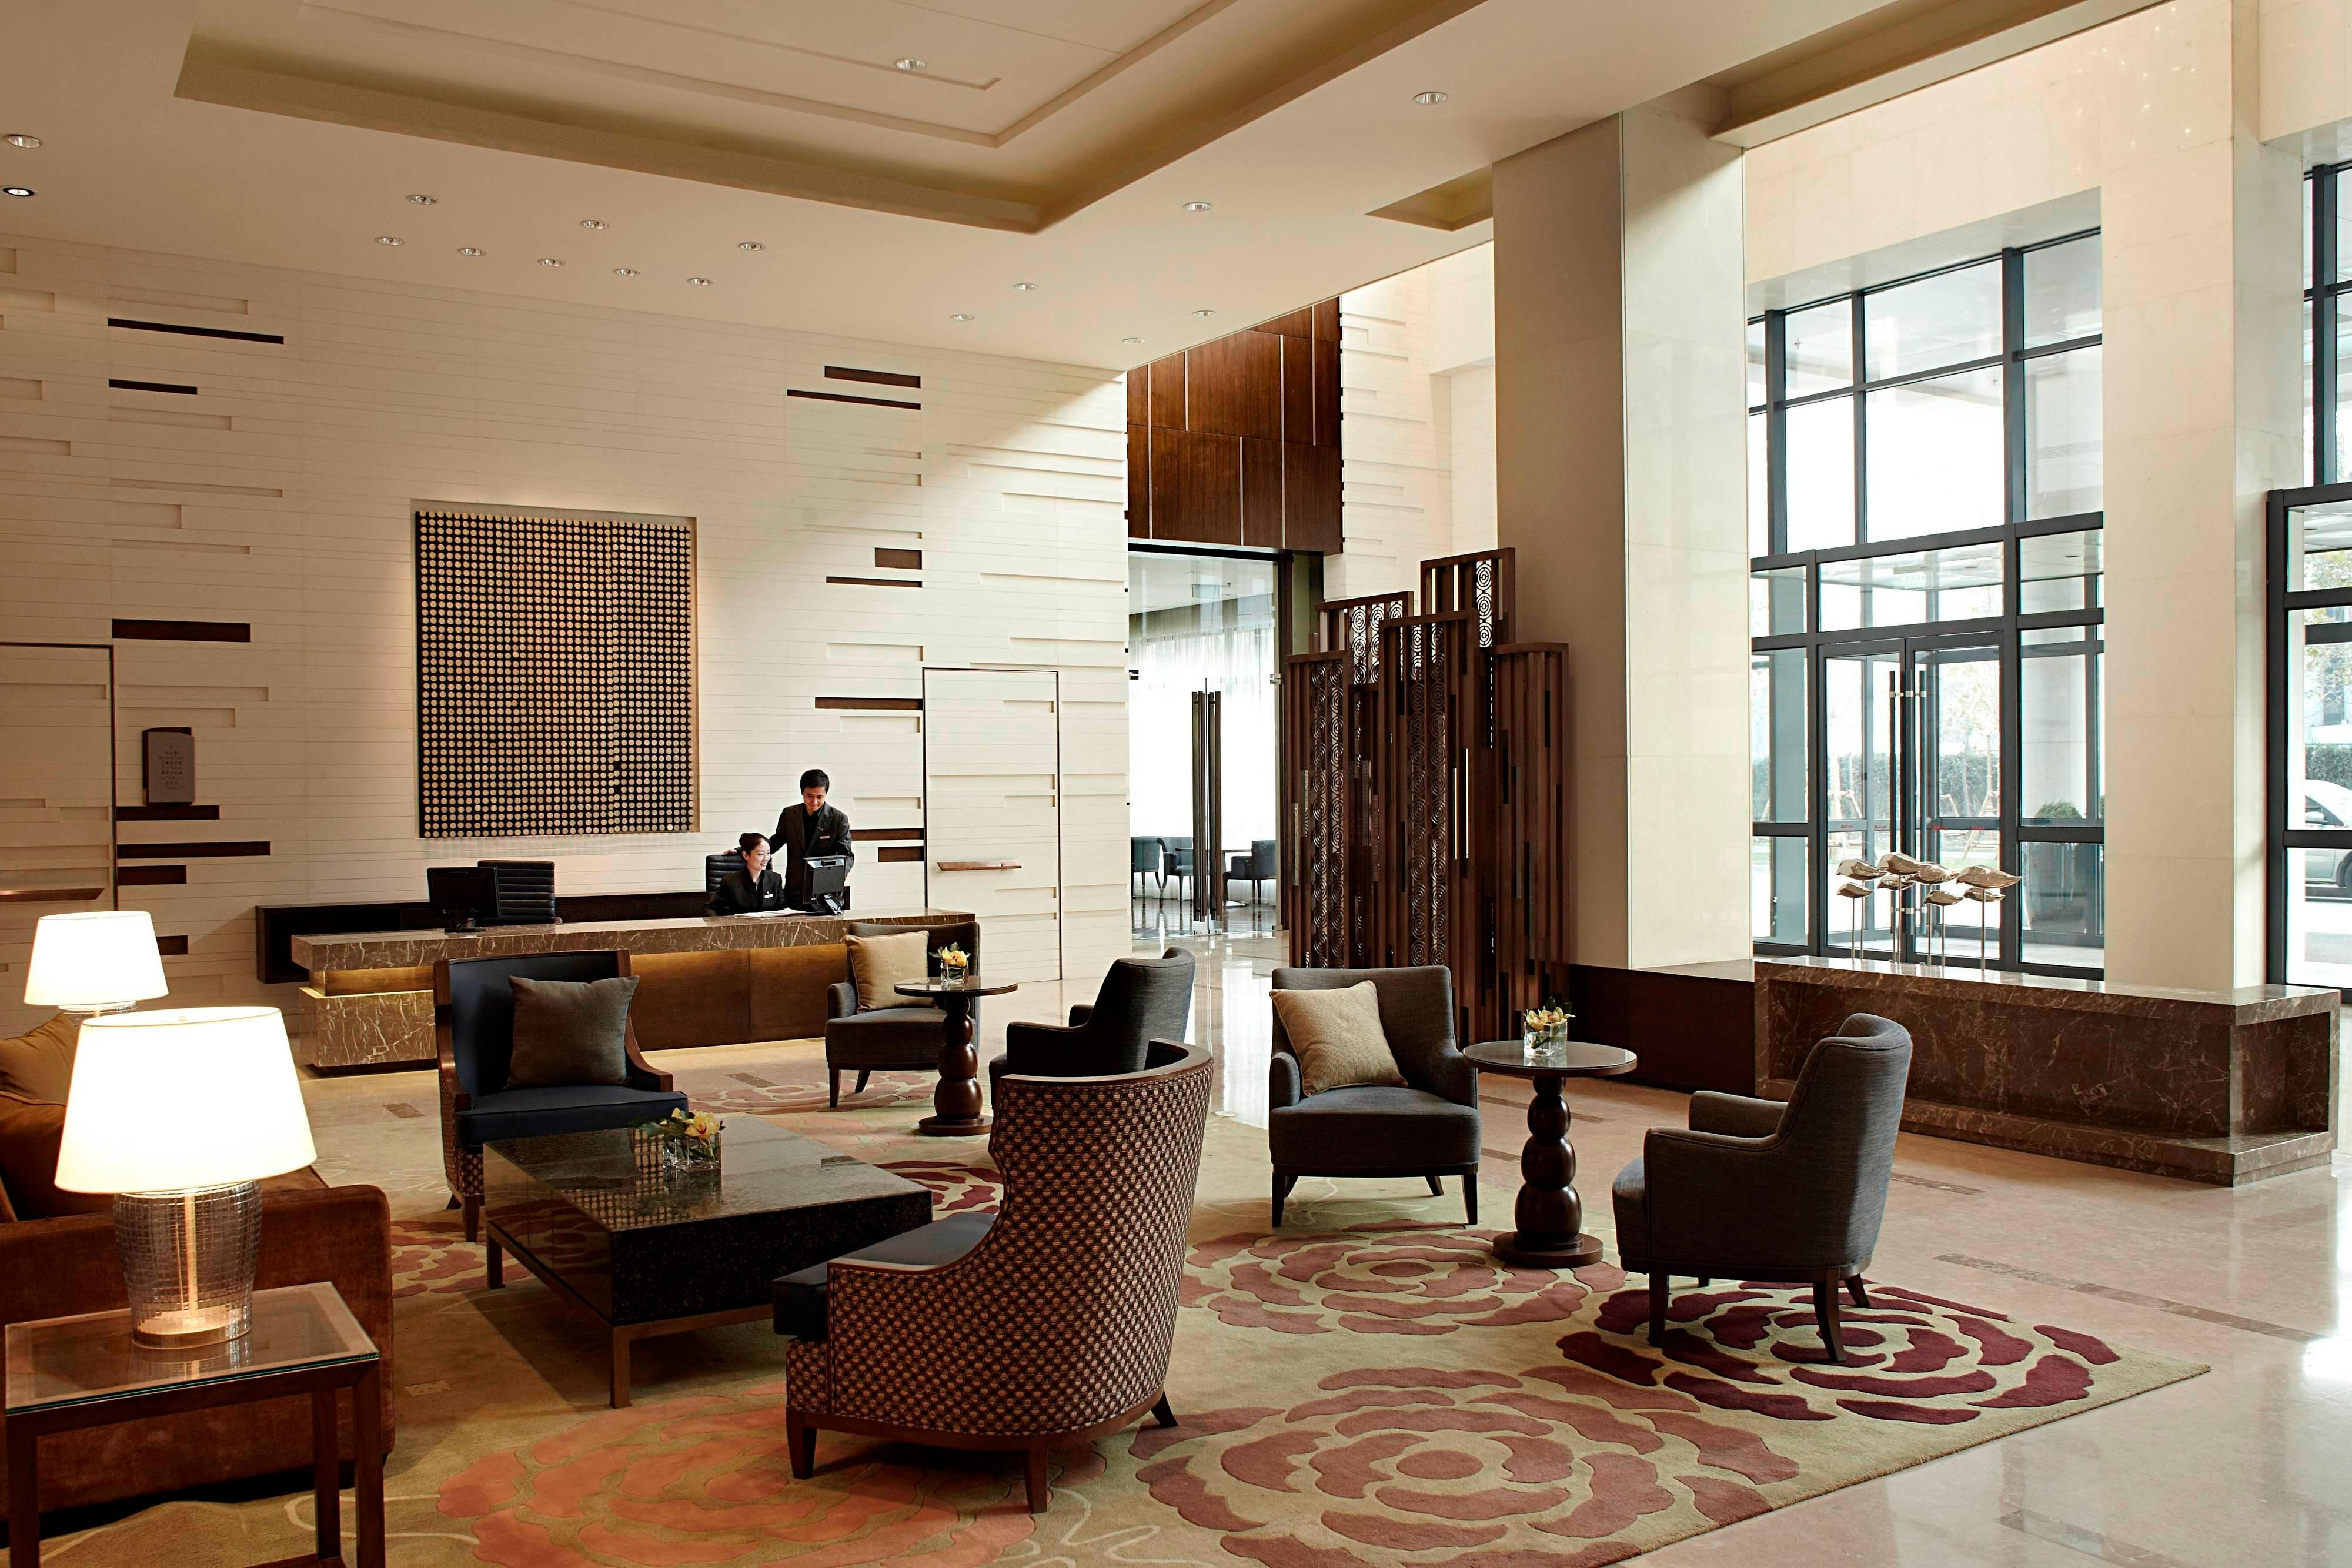 Tianjin Marriott, Tianjin corporate housing